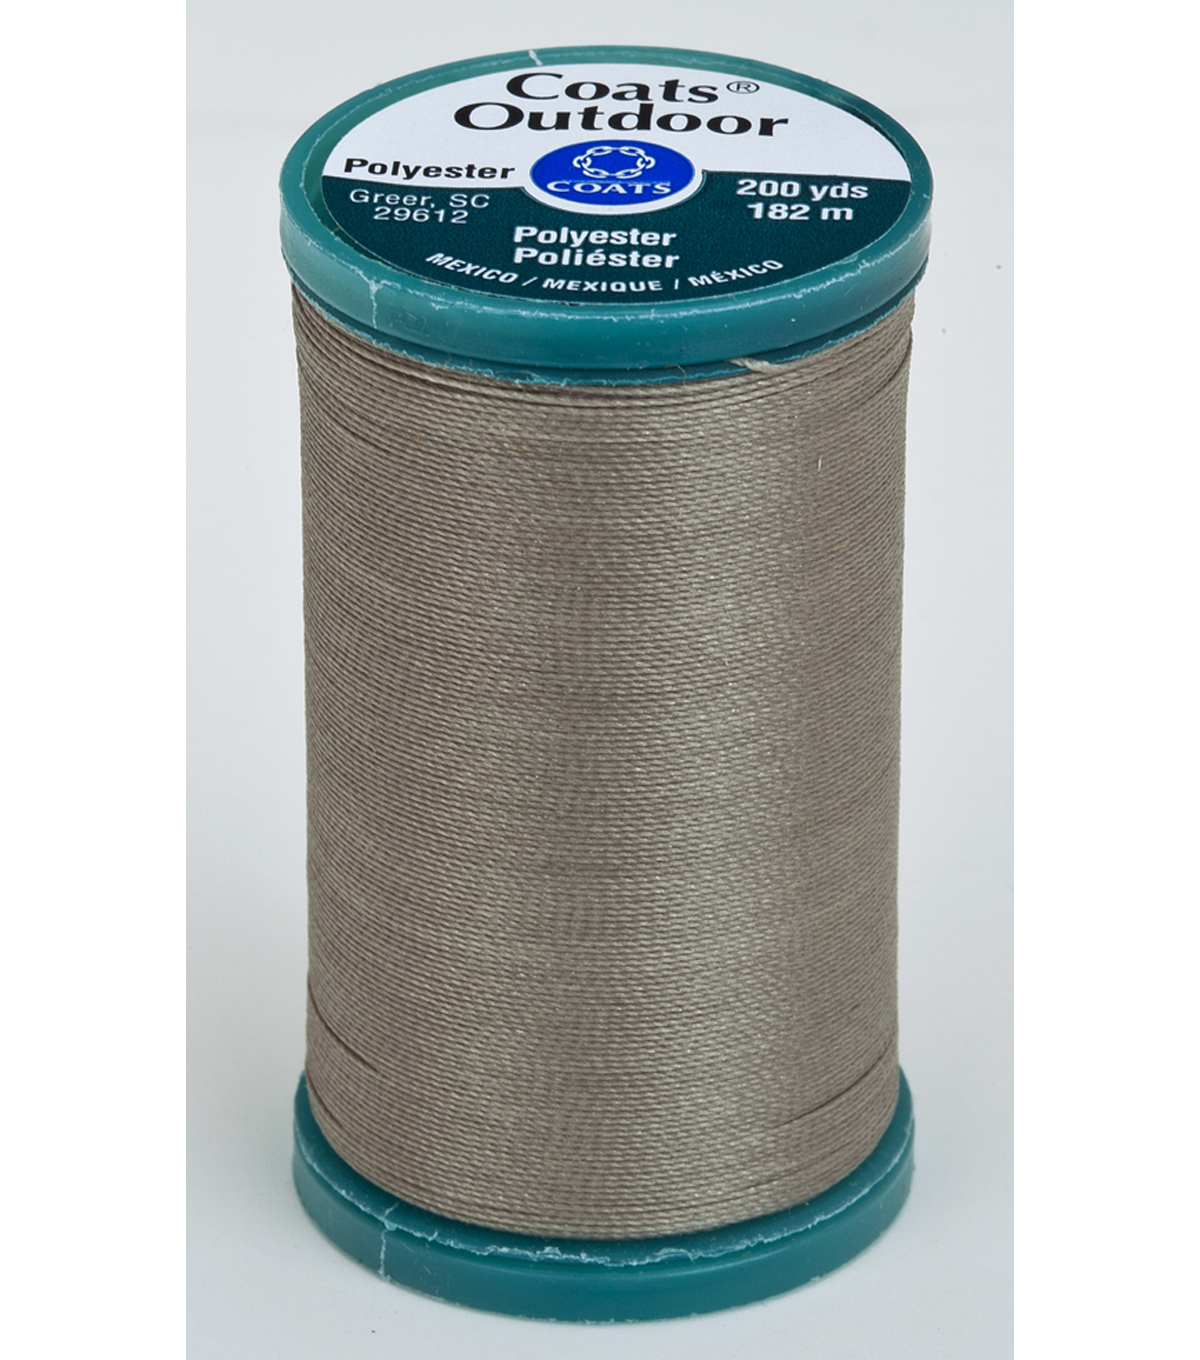 Coats & Clark Outdoor 200yd Thread, Coats Outdoor 200yd Steel